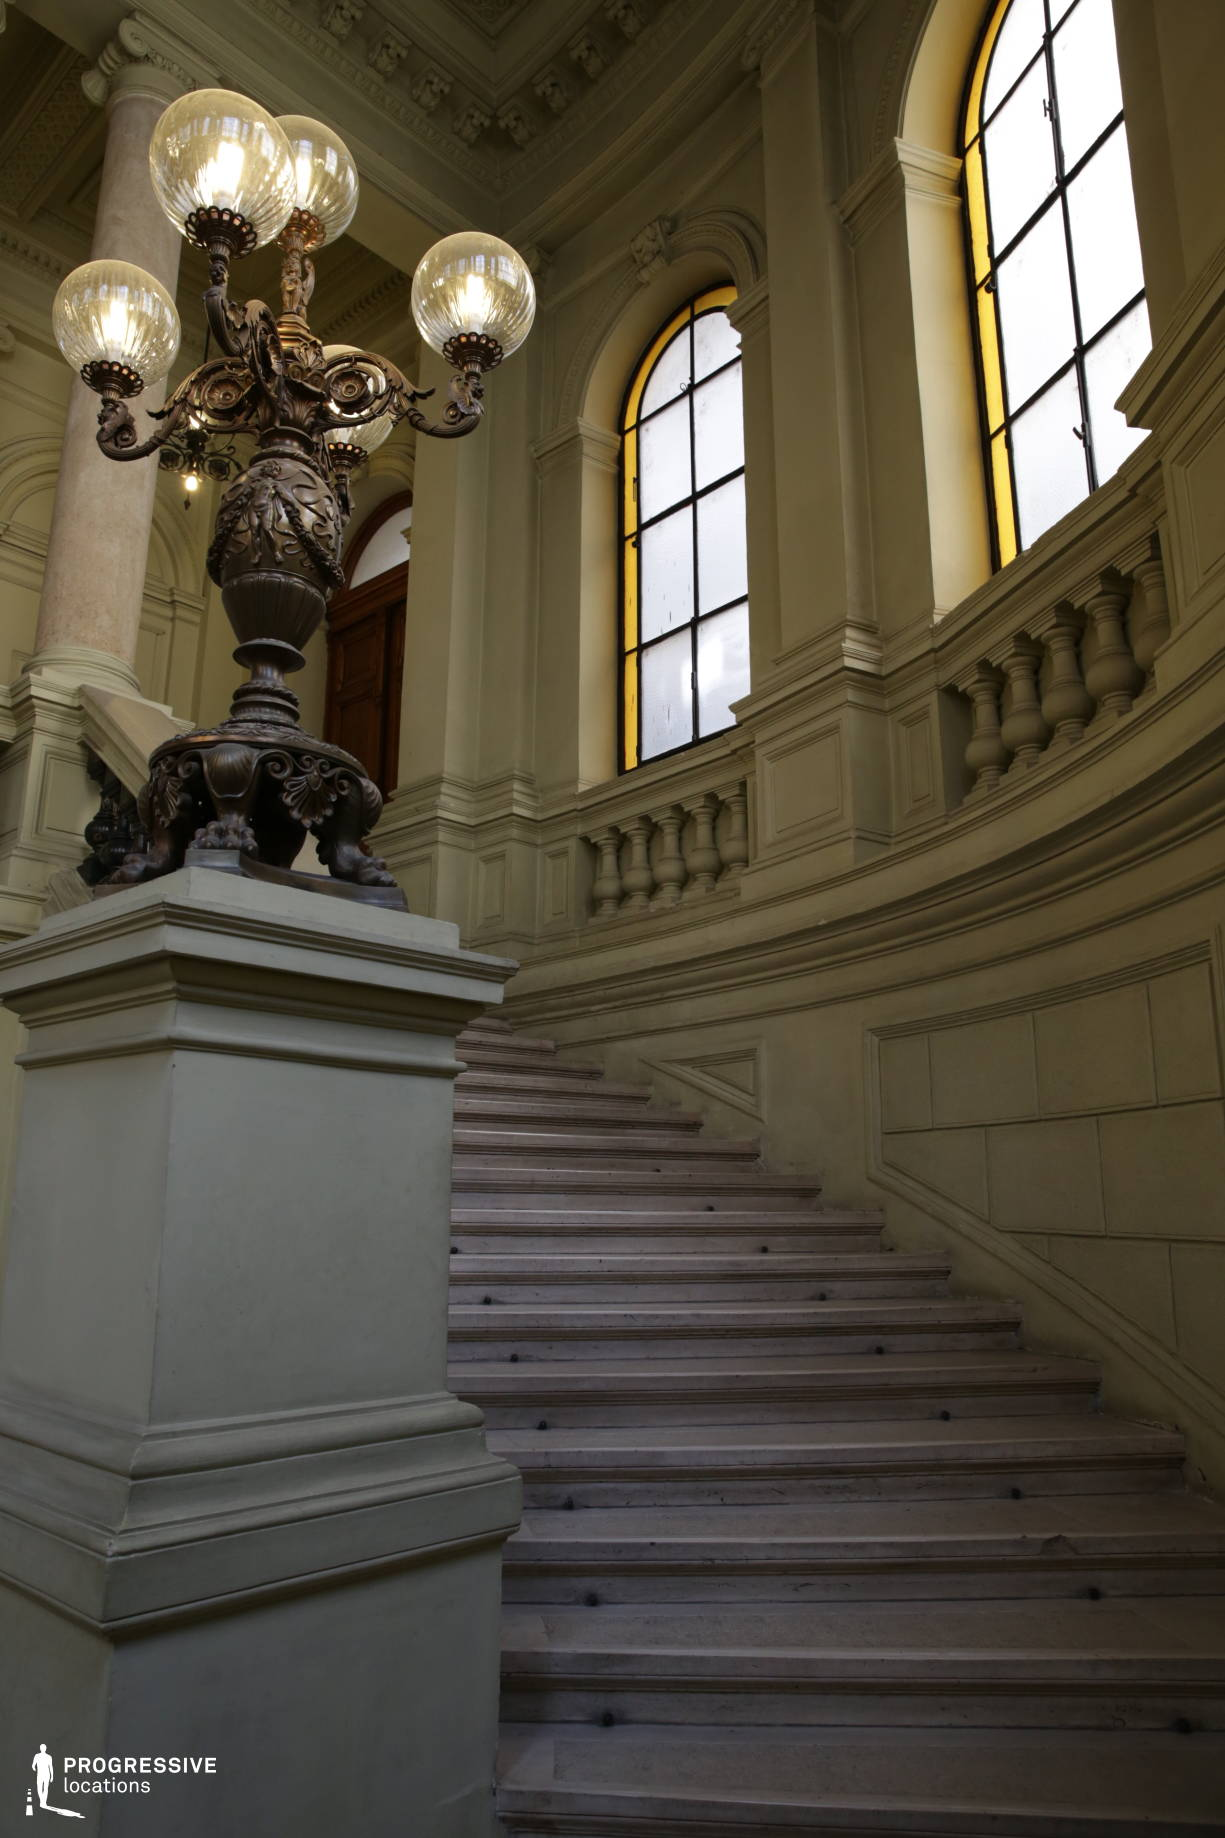 Locations in Hungary: University Library, Staircase